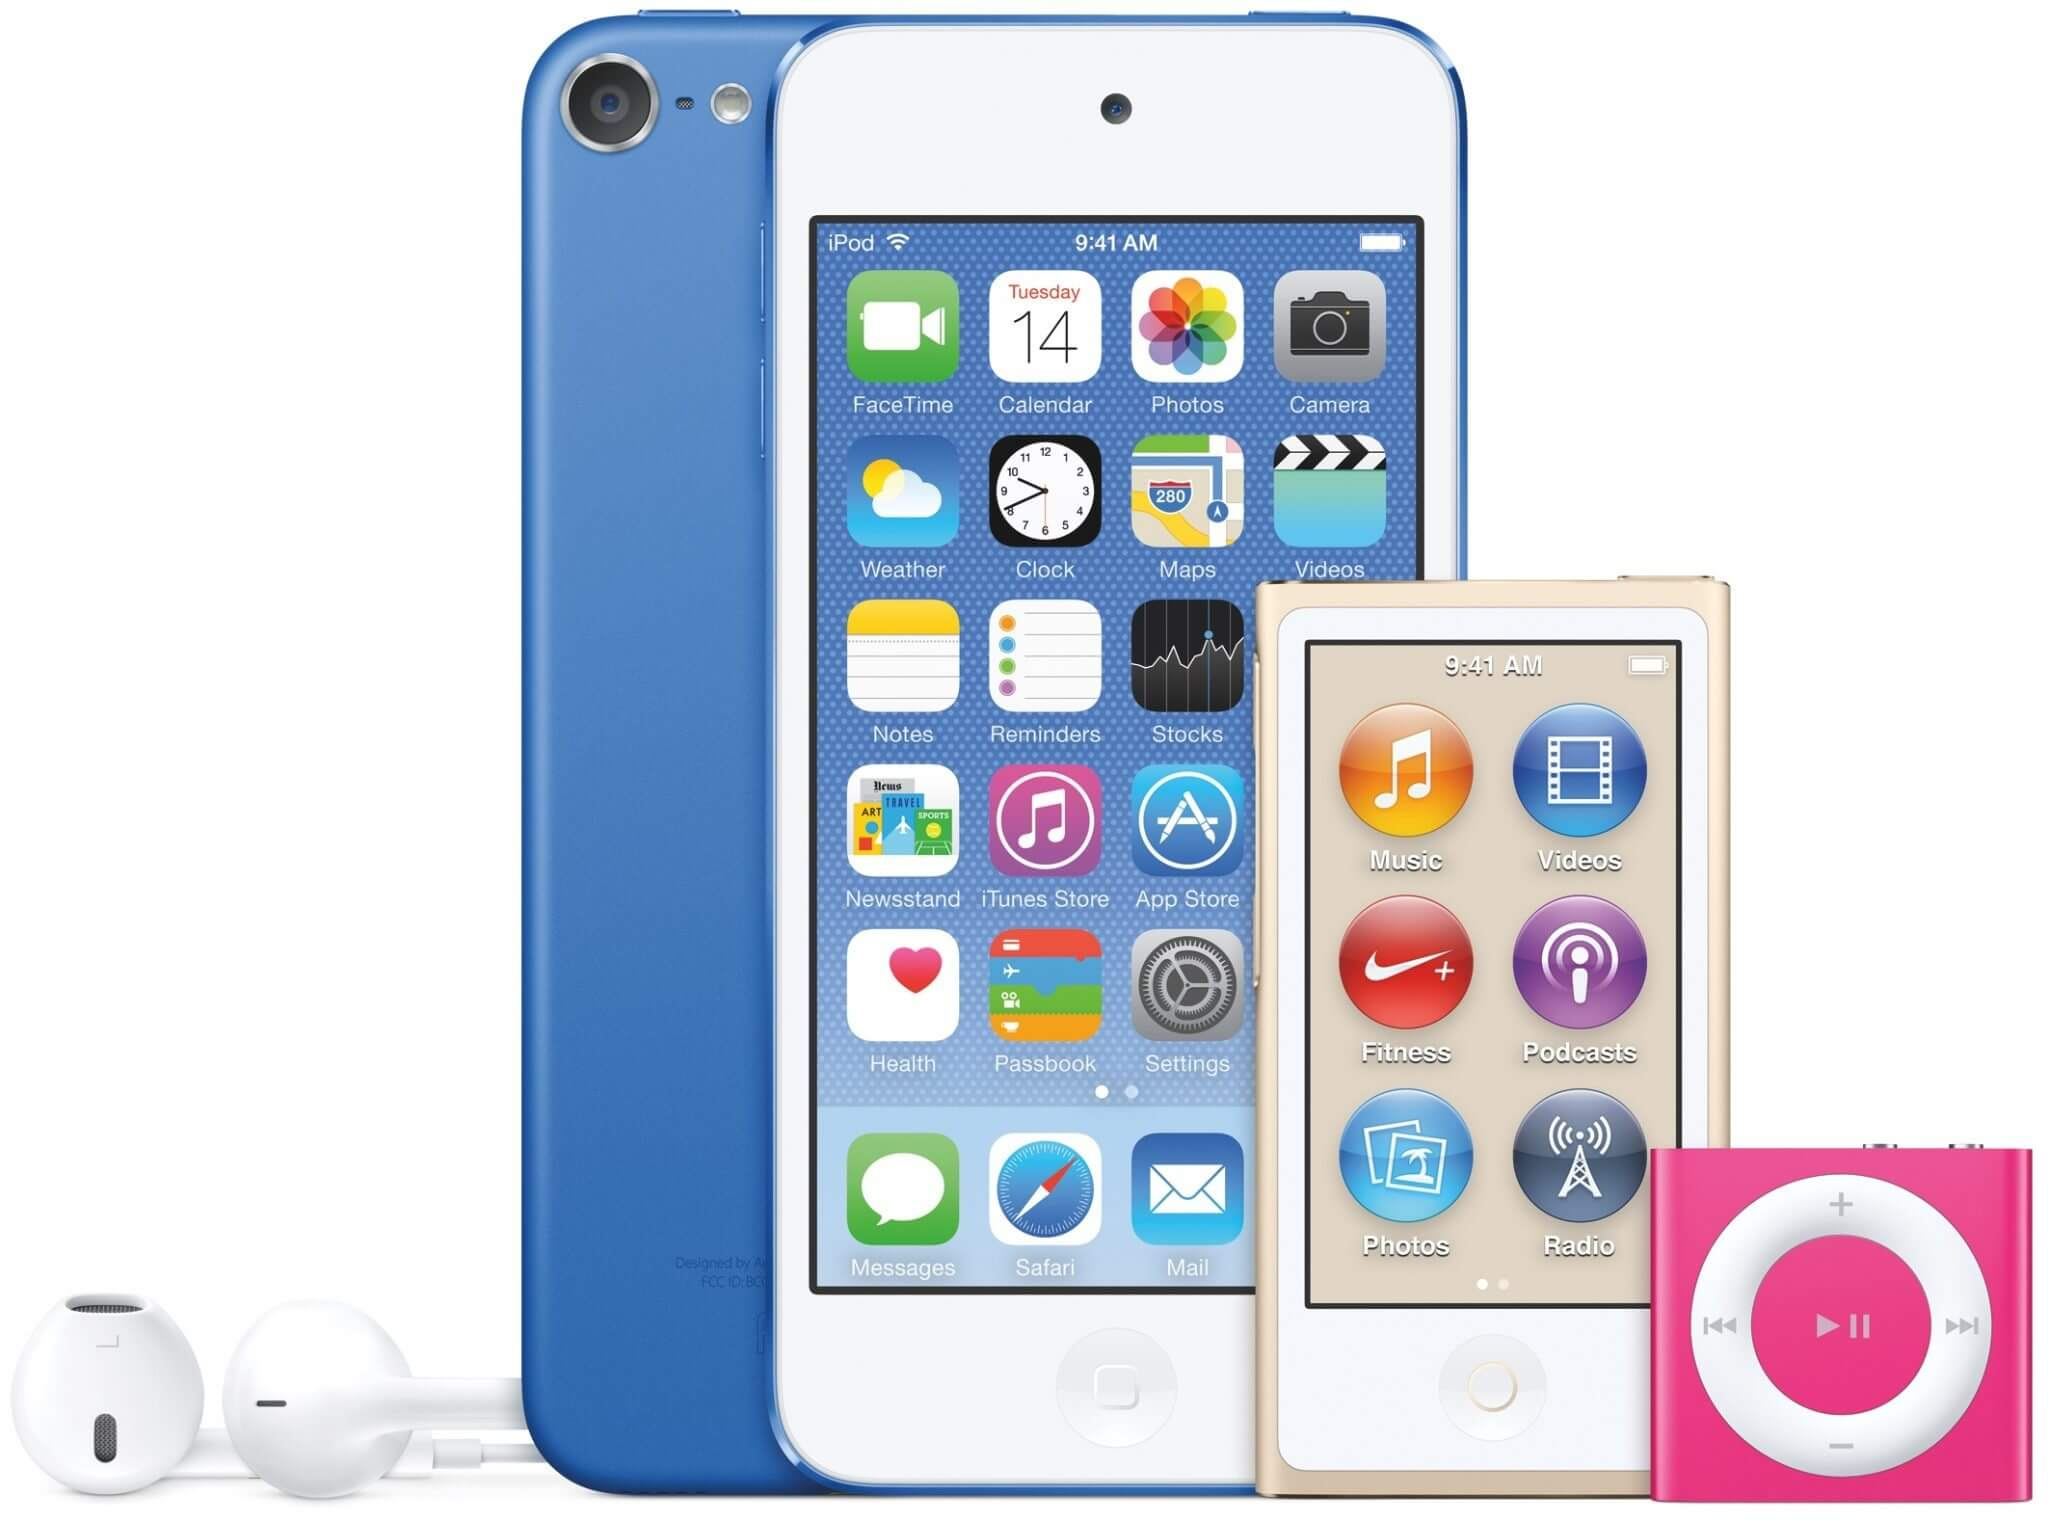 iPod family mid 2015 image 001